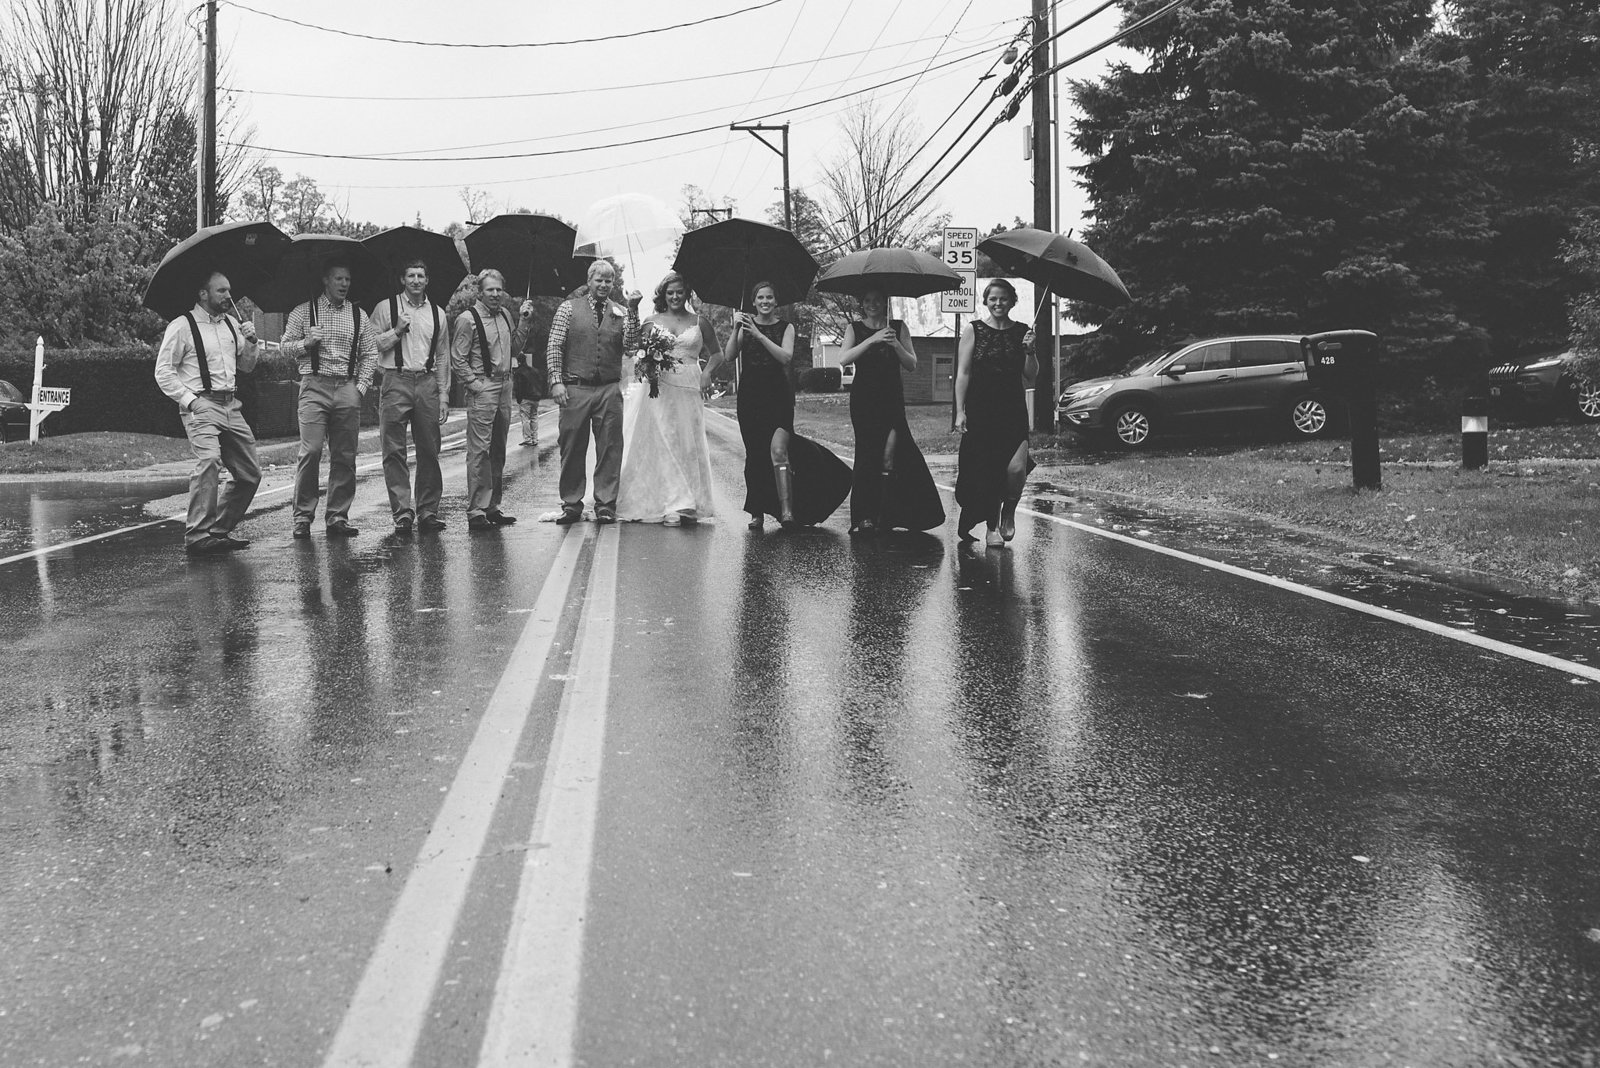 bridal party in the rain, bridal party with umbrellas, black and white wedding photos, Vermont wedding photographer, fall wedding in Vermont